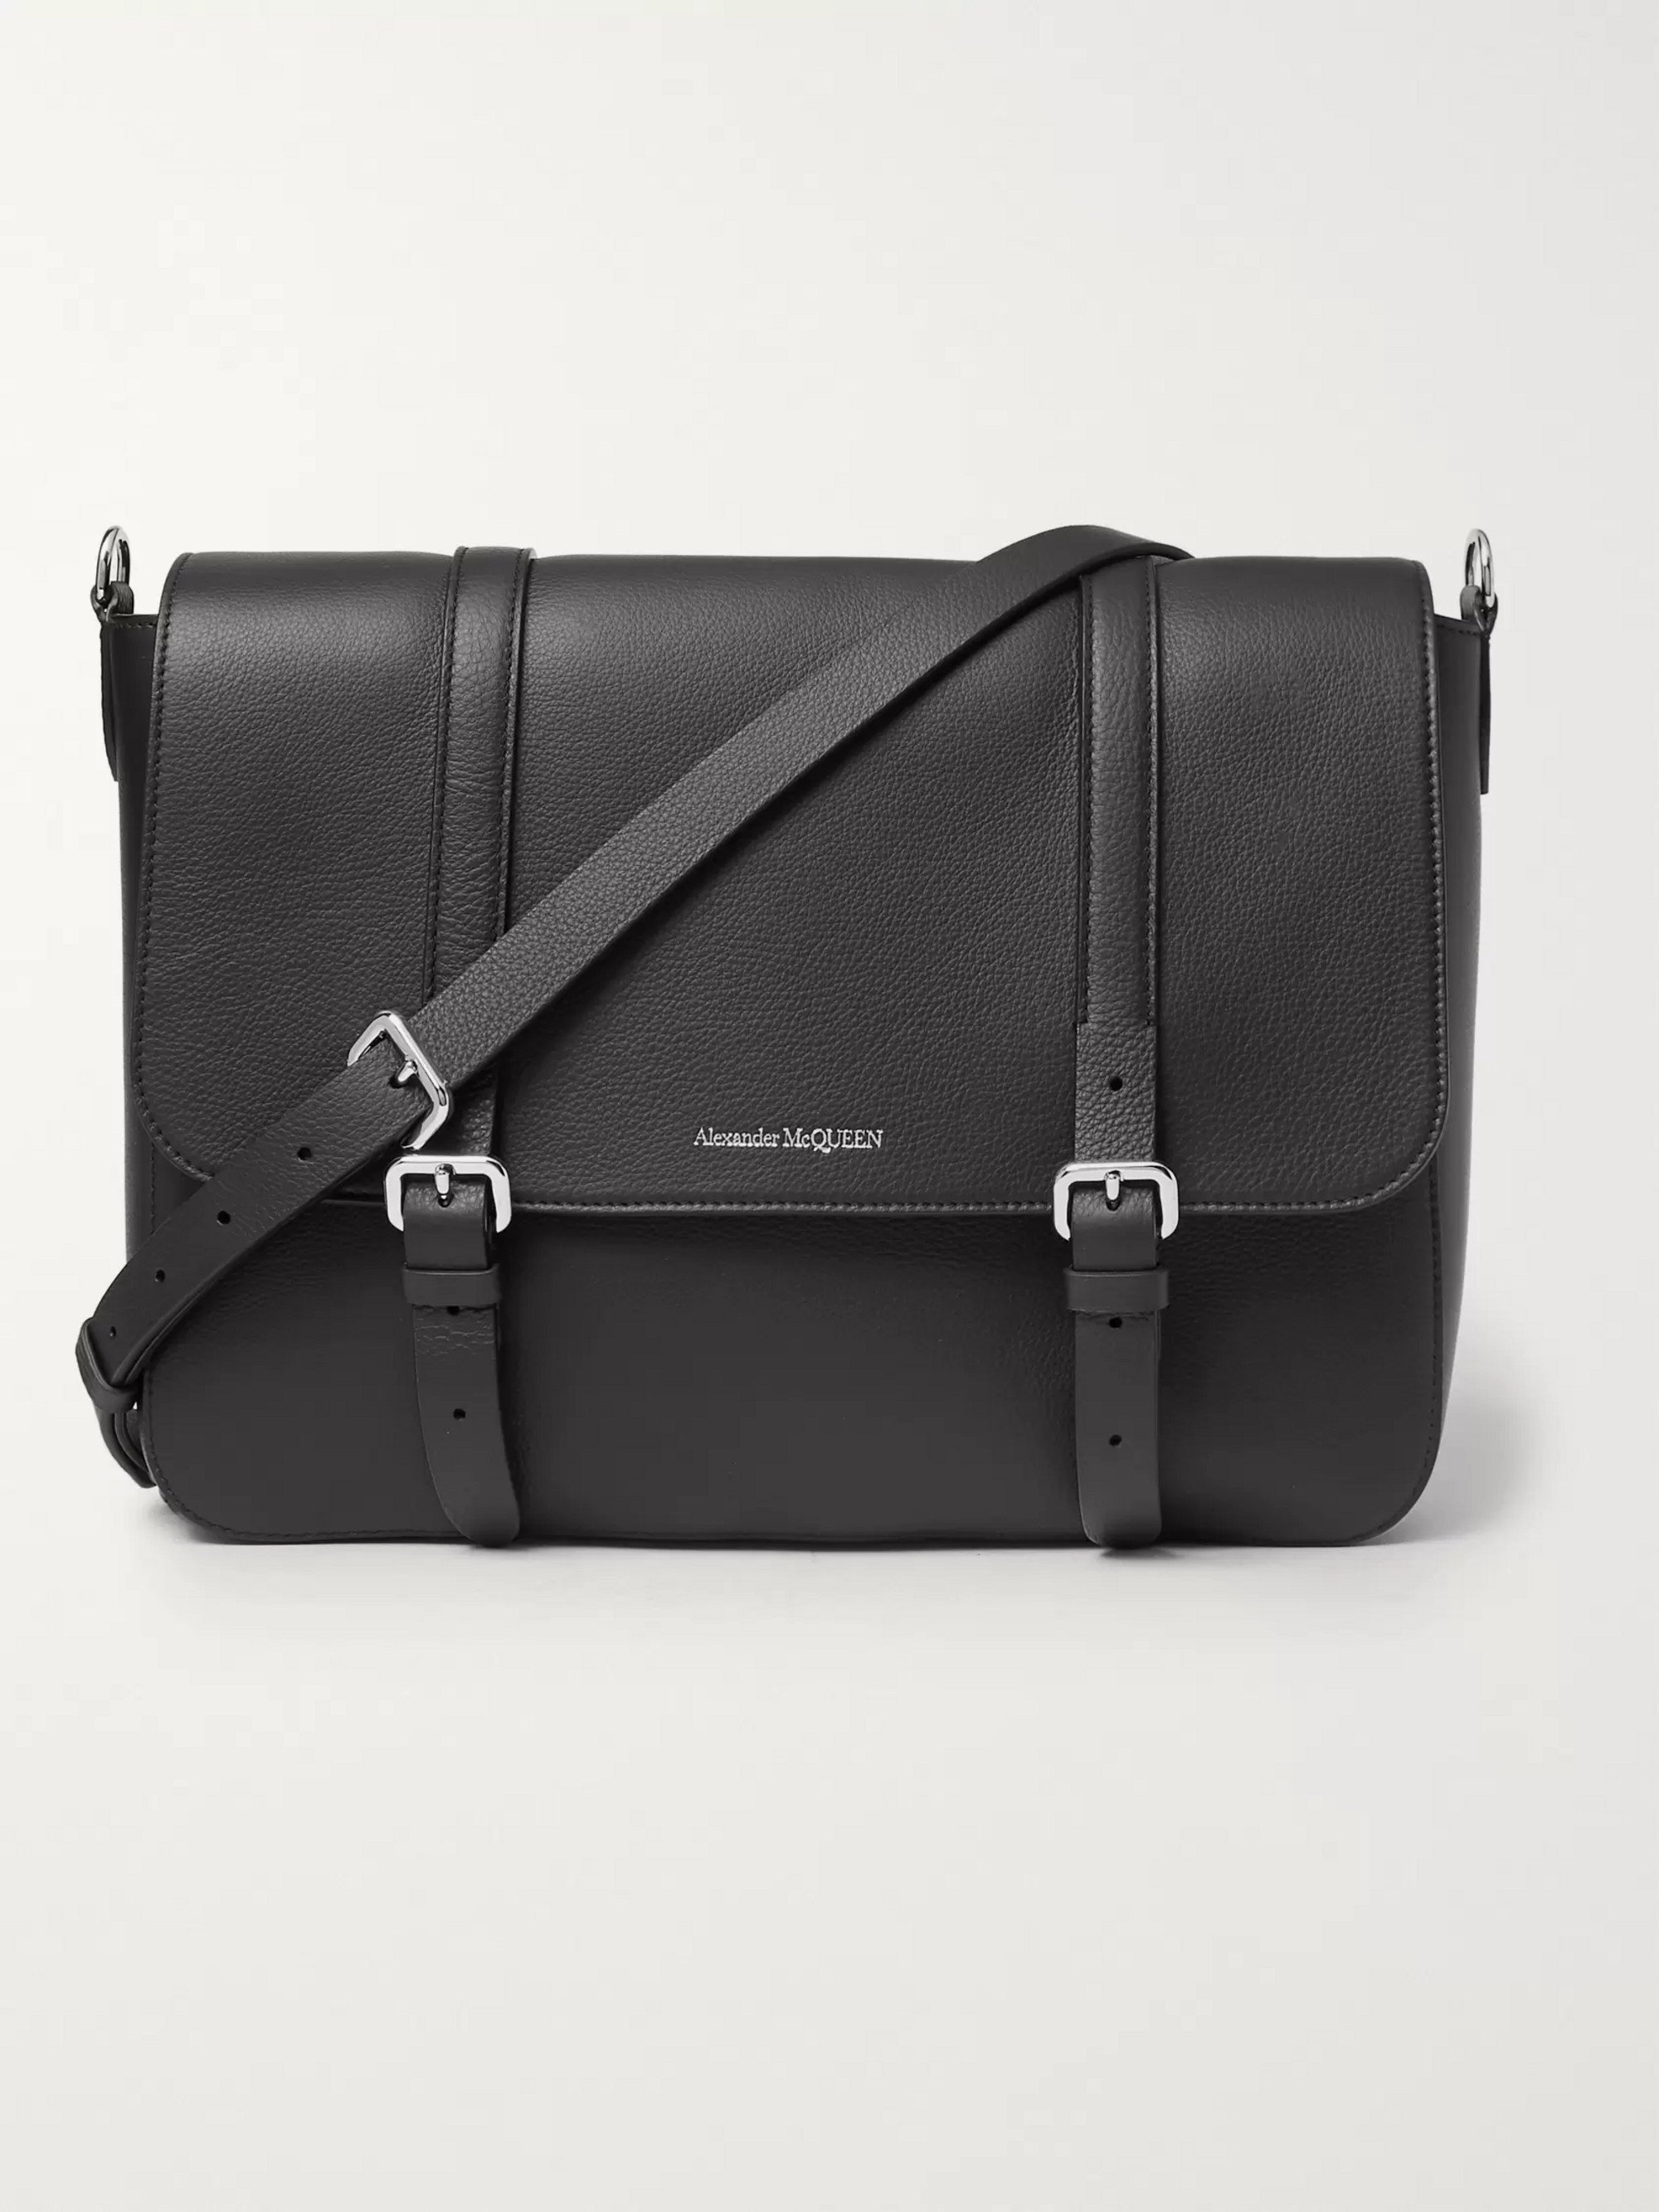 Alexander McQueen Full-Grain Leather Messenger Bag